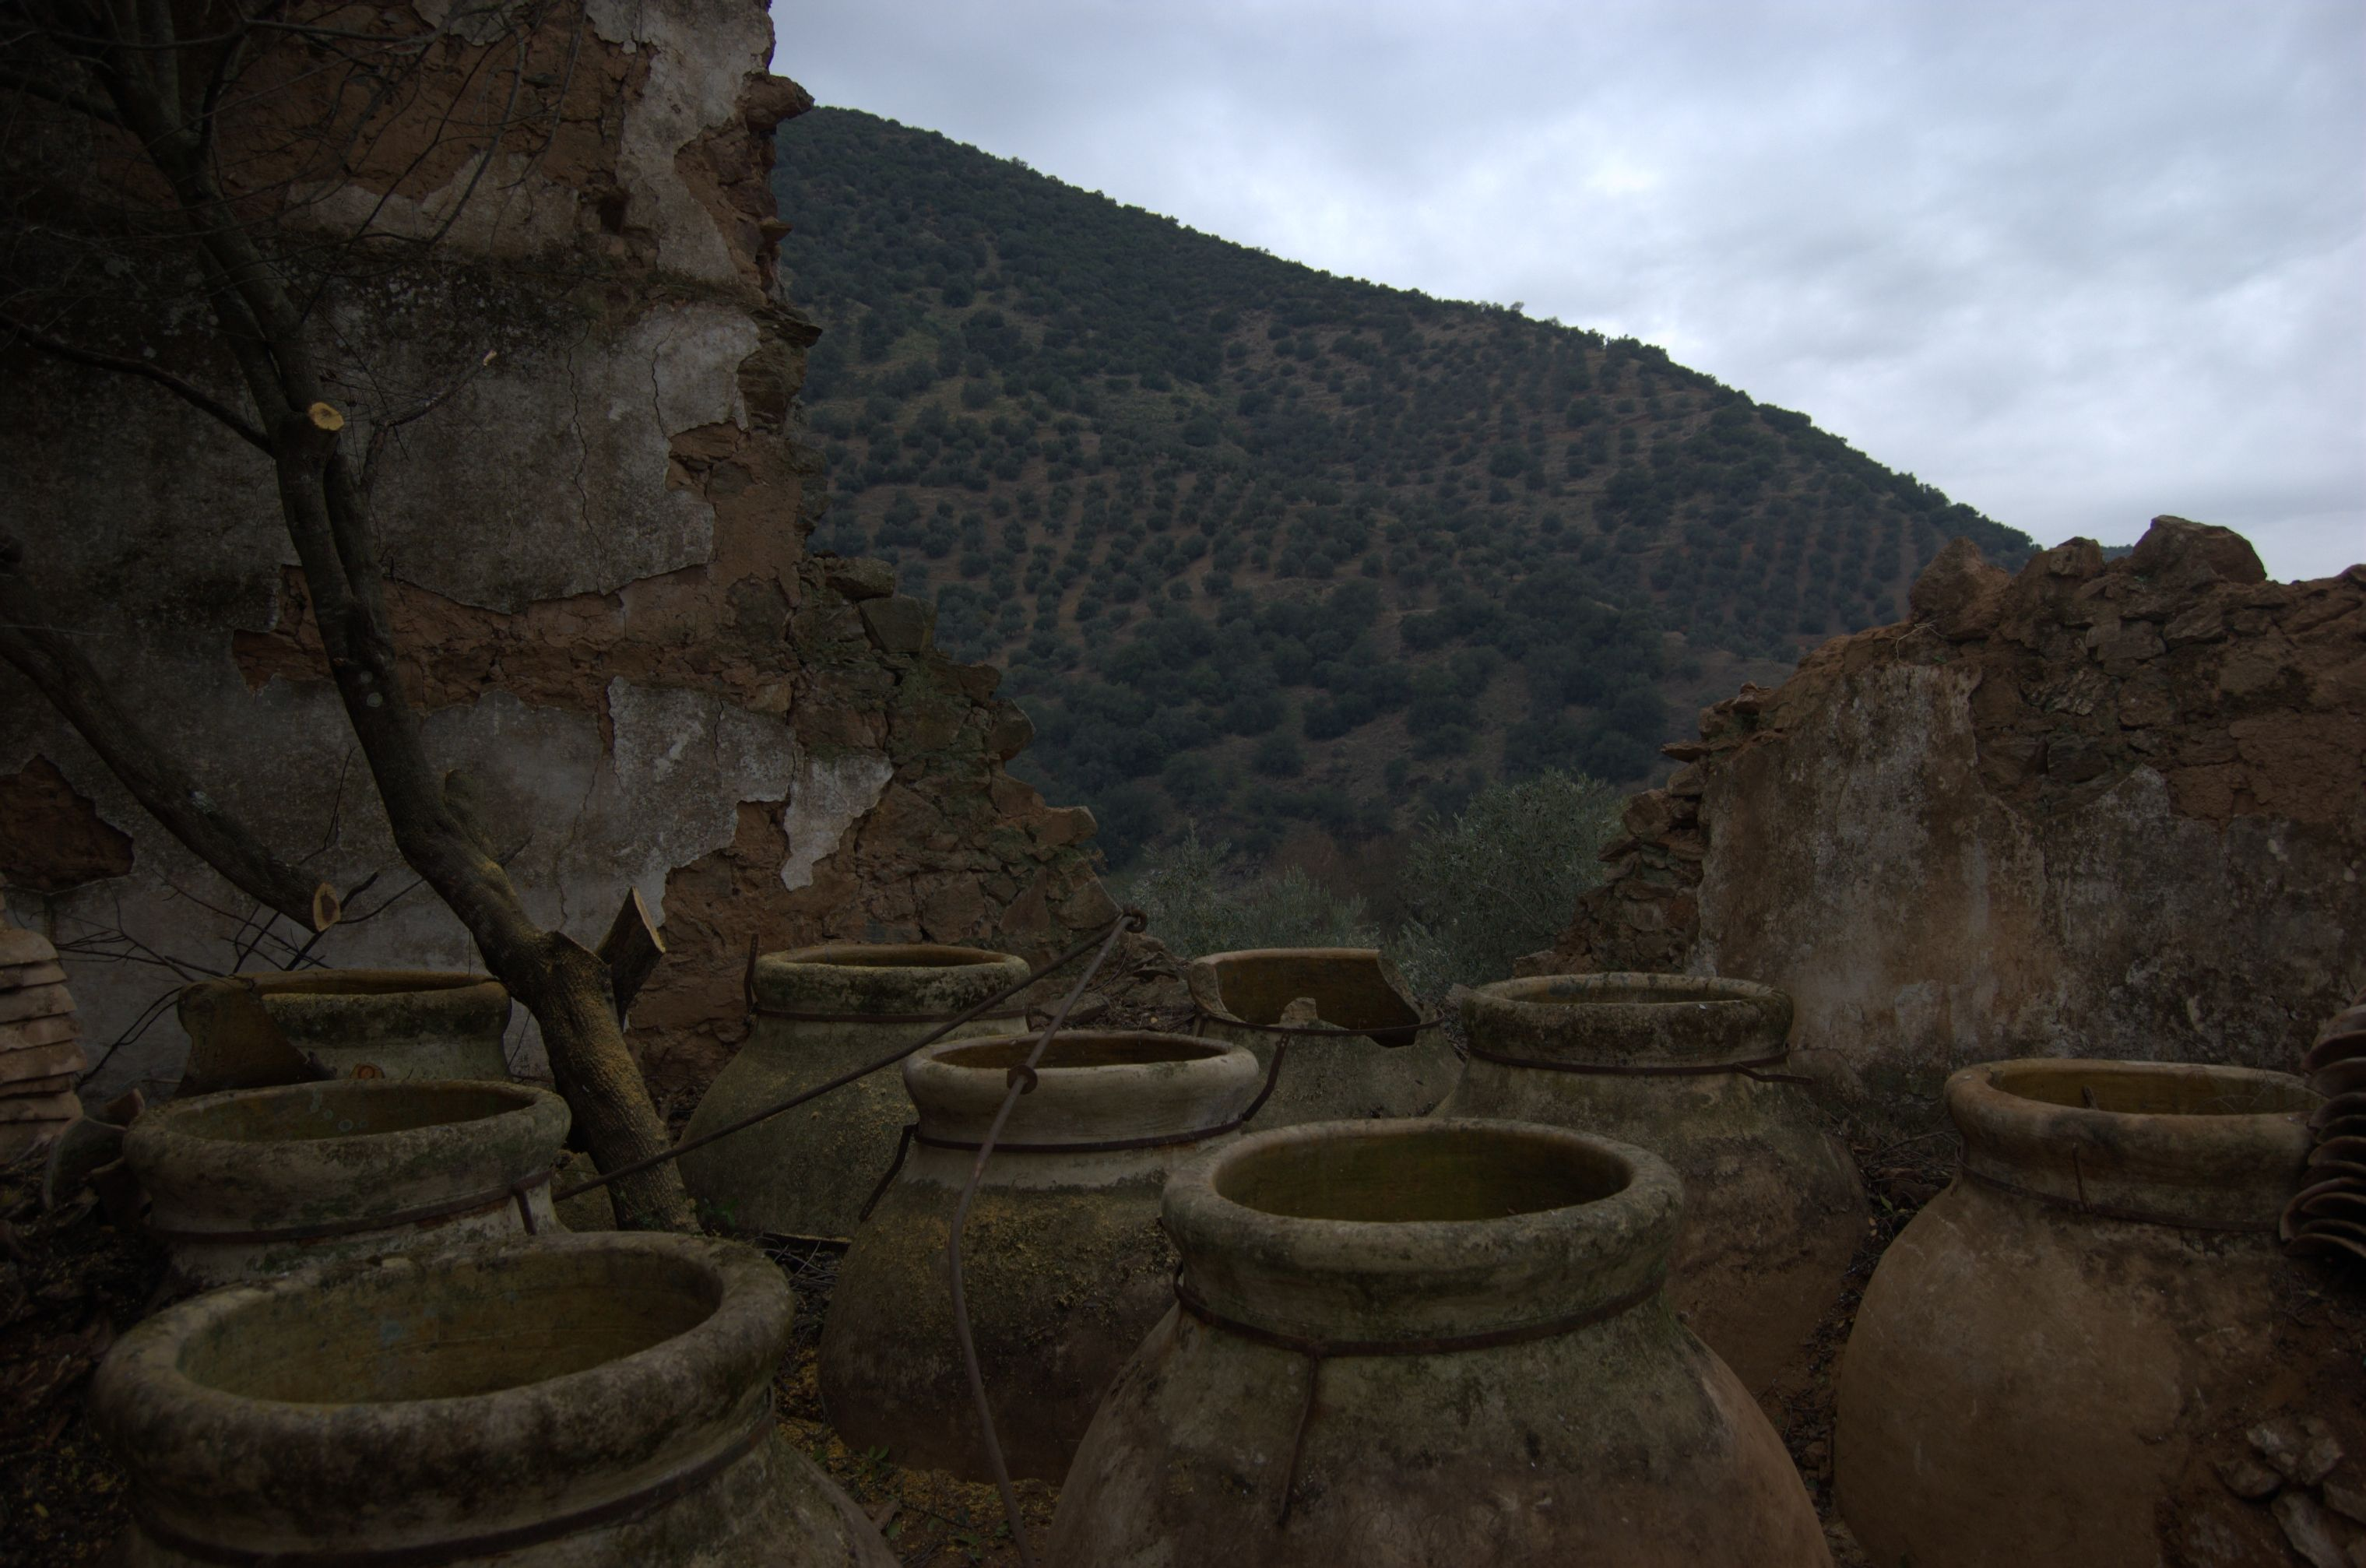 Tinajas del molino de los Agüillos en Adamuz